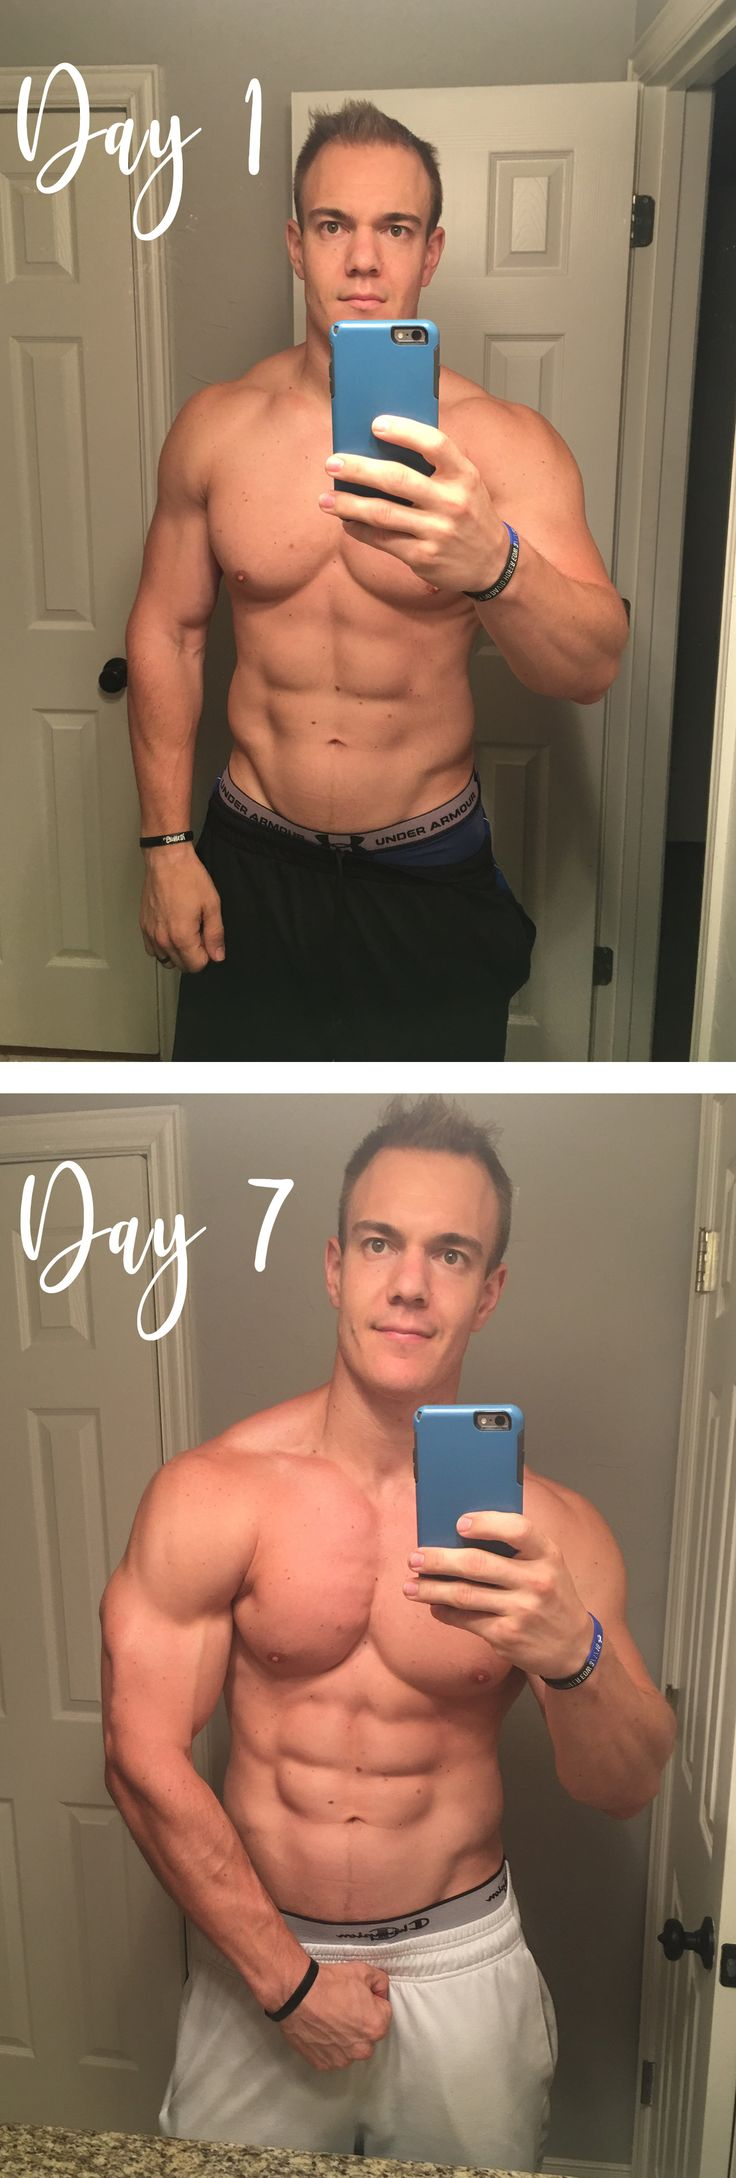 Chris Gronkowski: My 1 week challenge!  I wanted to see if I could see a noticeable difference in 1 week!  I already was working out almost everyday and I eat pretty healthy so my results probably weren't as significant as someone that doesn't work out or eat healthy if they did this challenge!